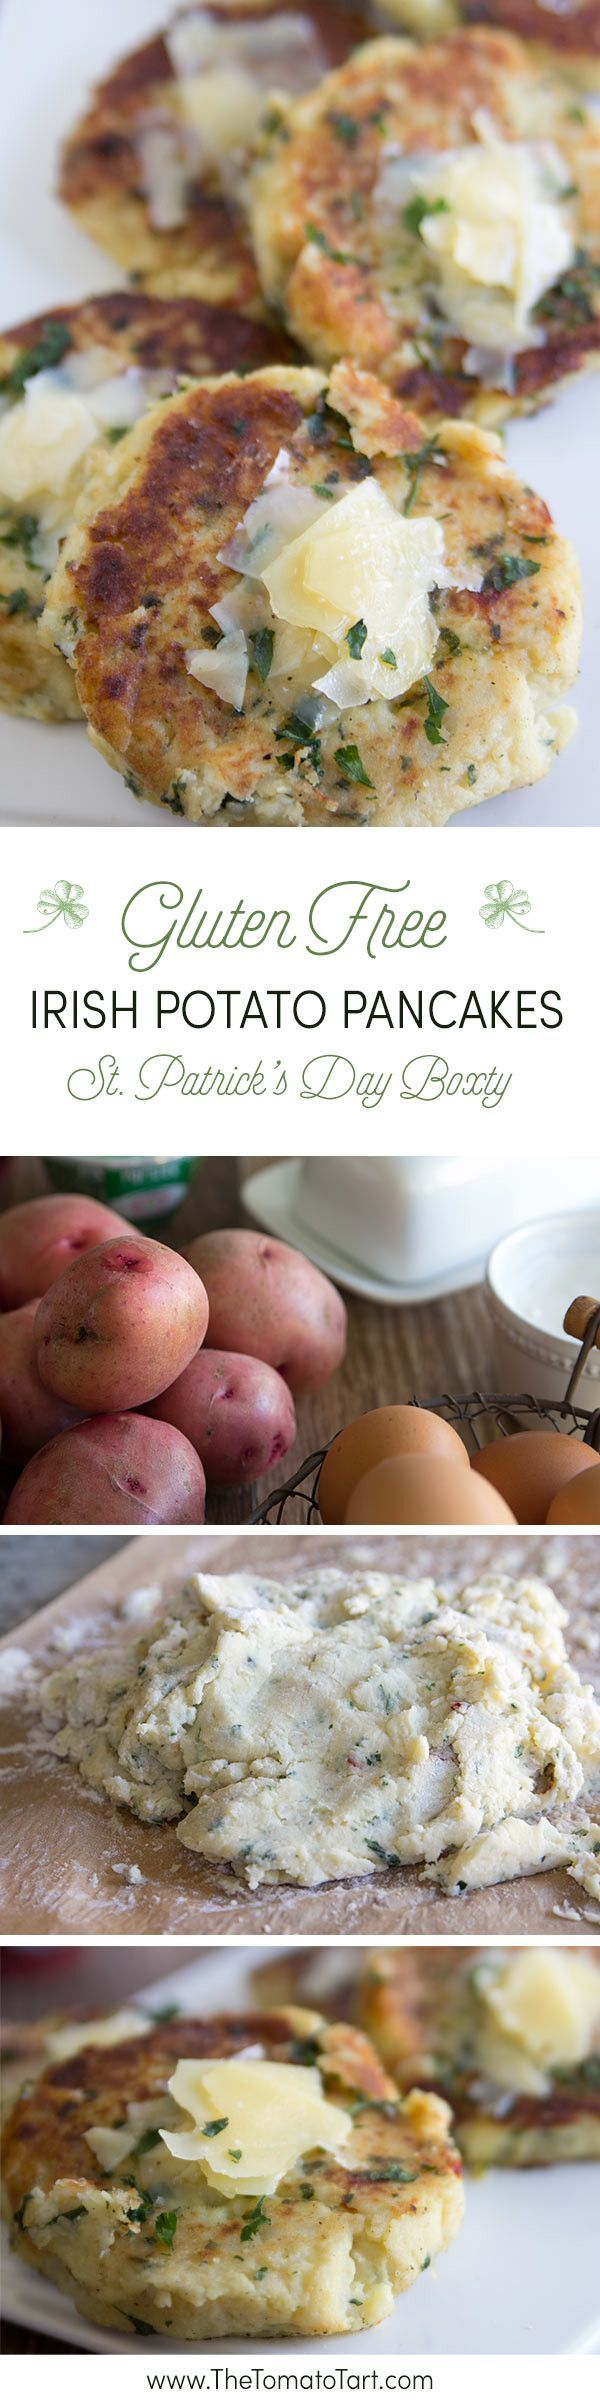 Gluten Free Irish Potato Pancakes, AKA Boxty. Serve at your St. Patrick's Day Party. from http://www.thetomatotart.com